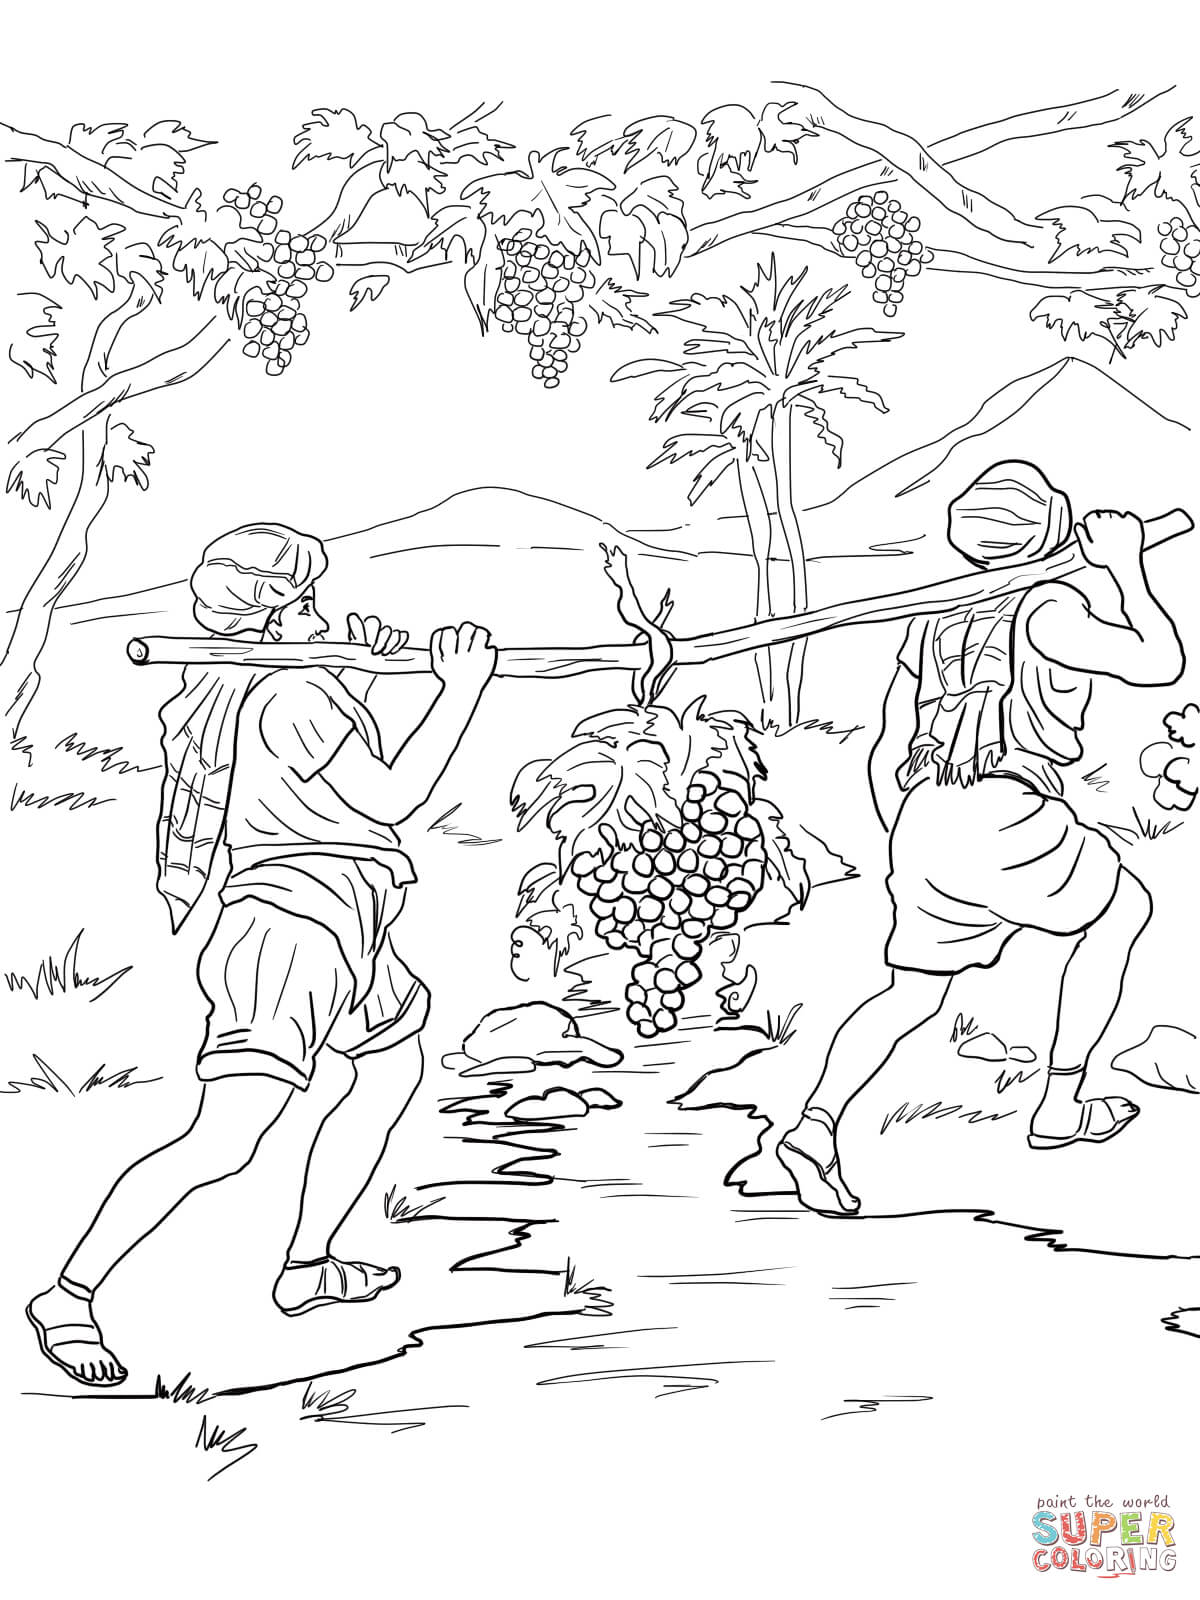 Coloring Page Of Israelites Crossing The Jordan River